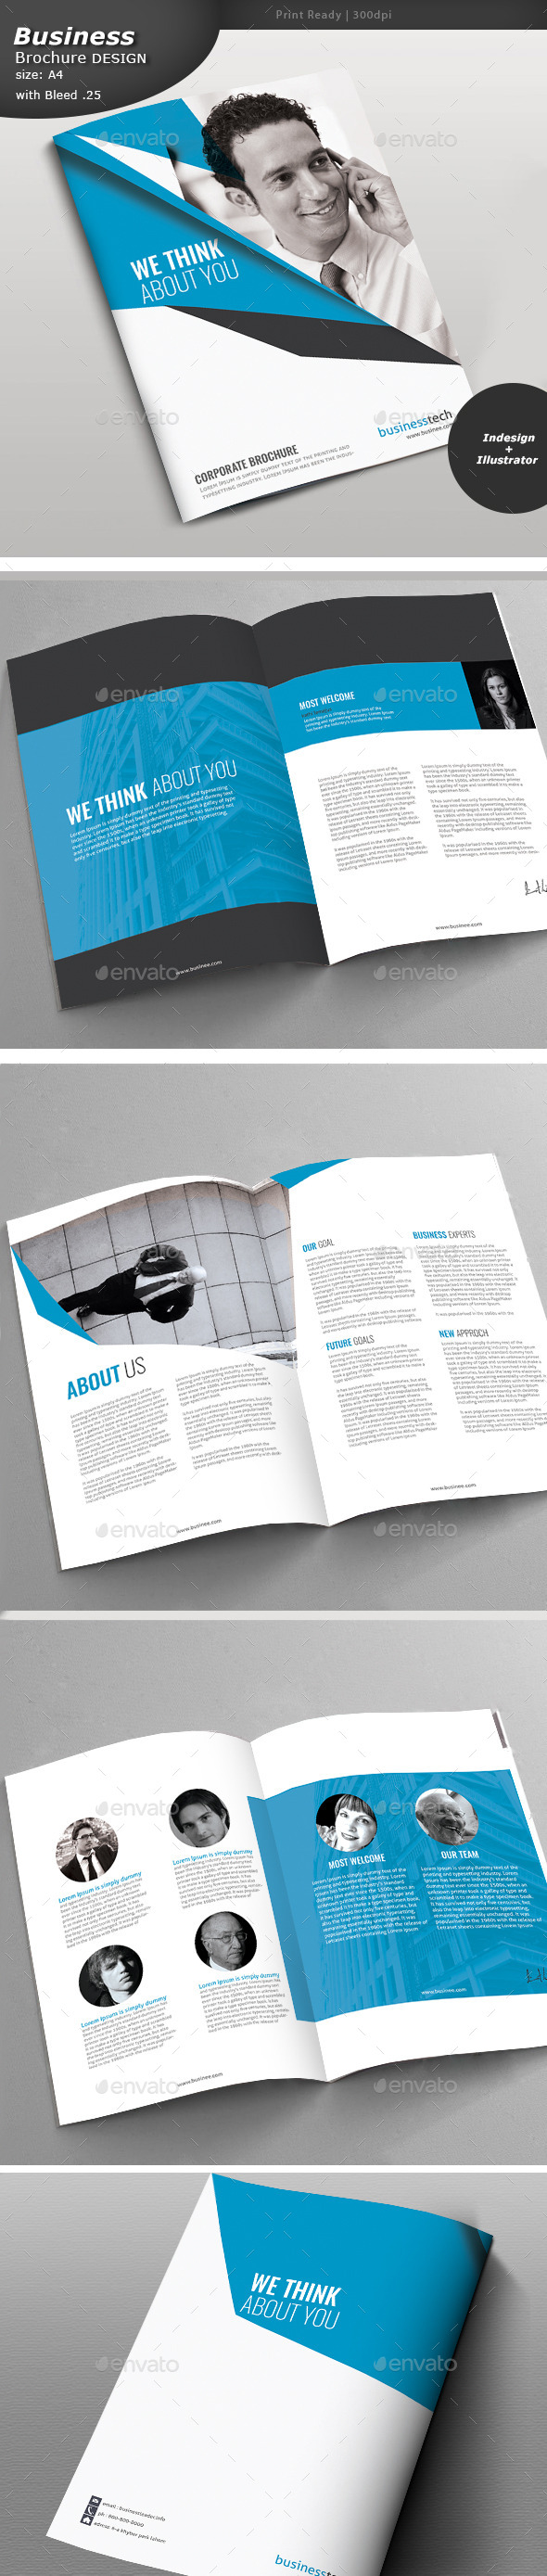 Business Brochure Double Sided  - Brochures Print Templates